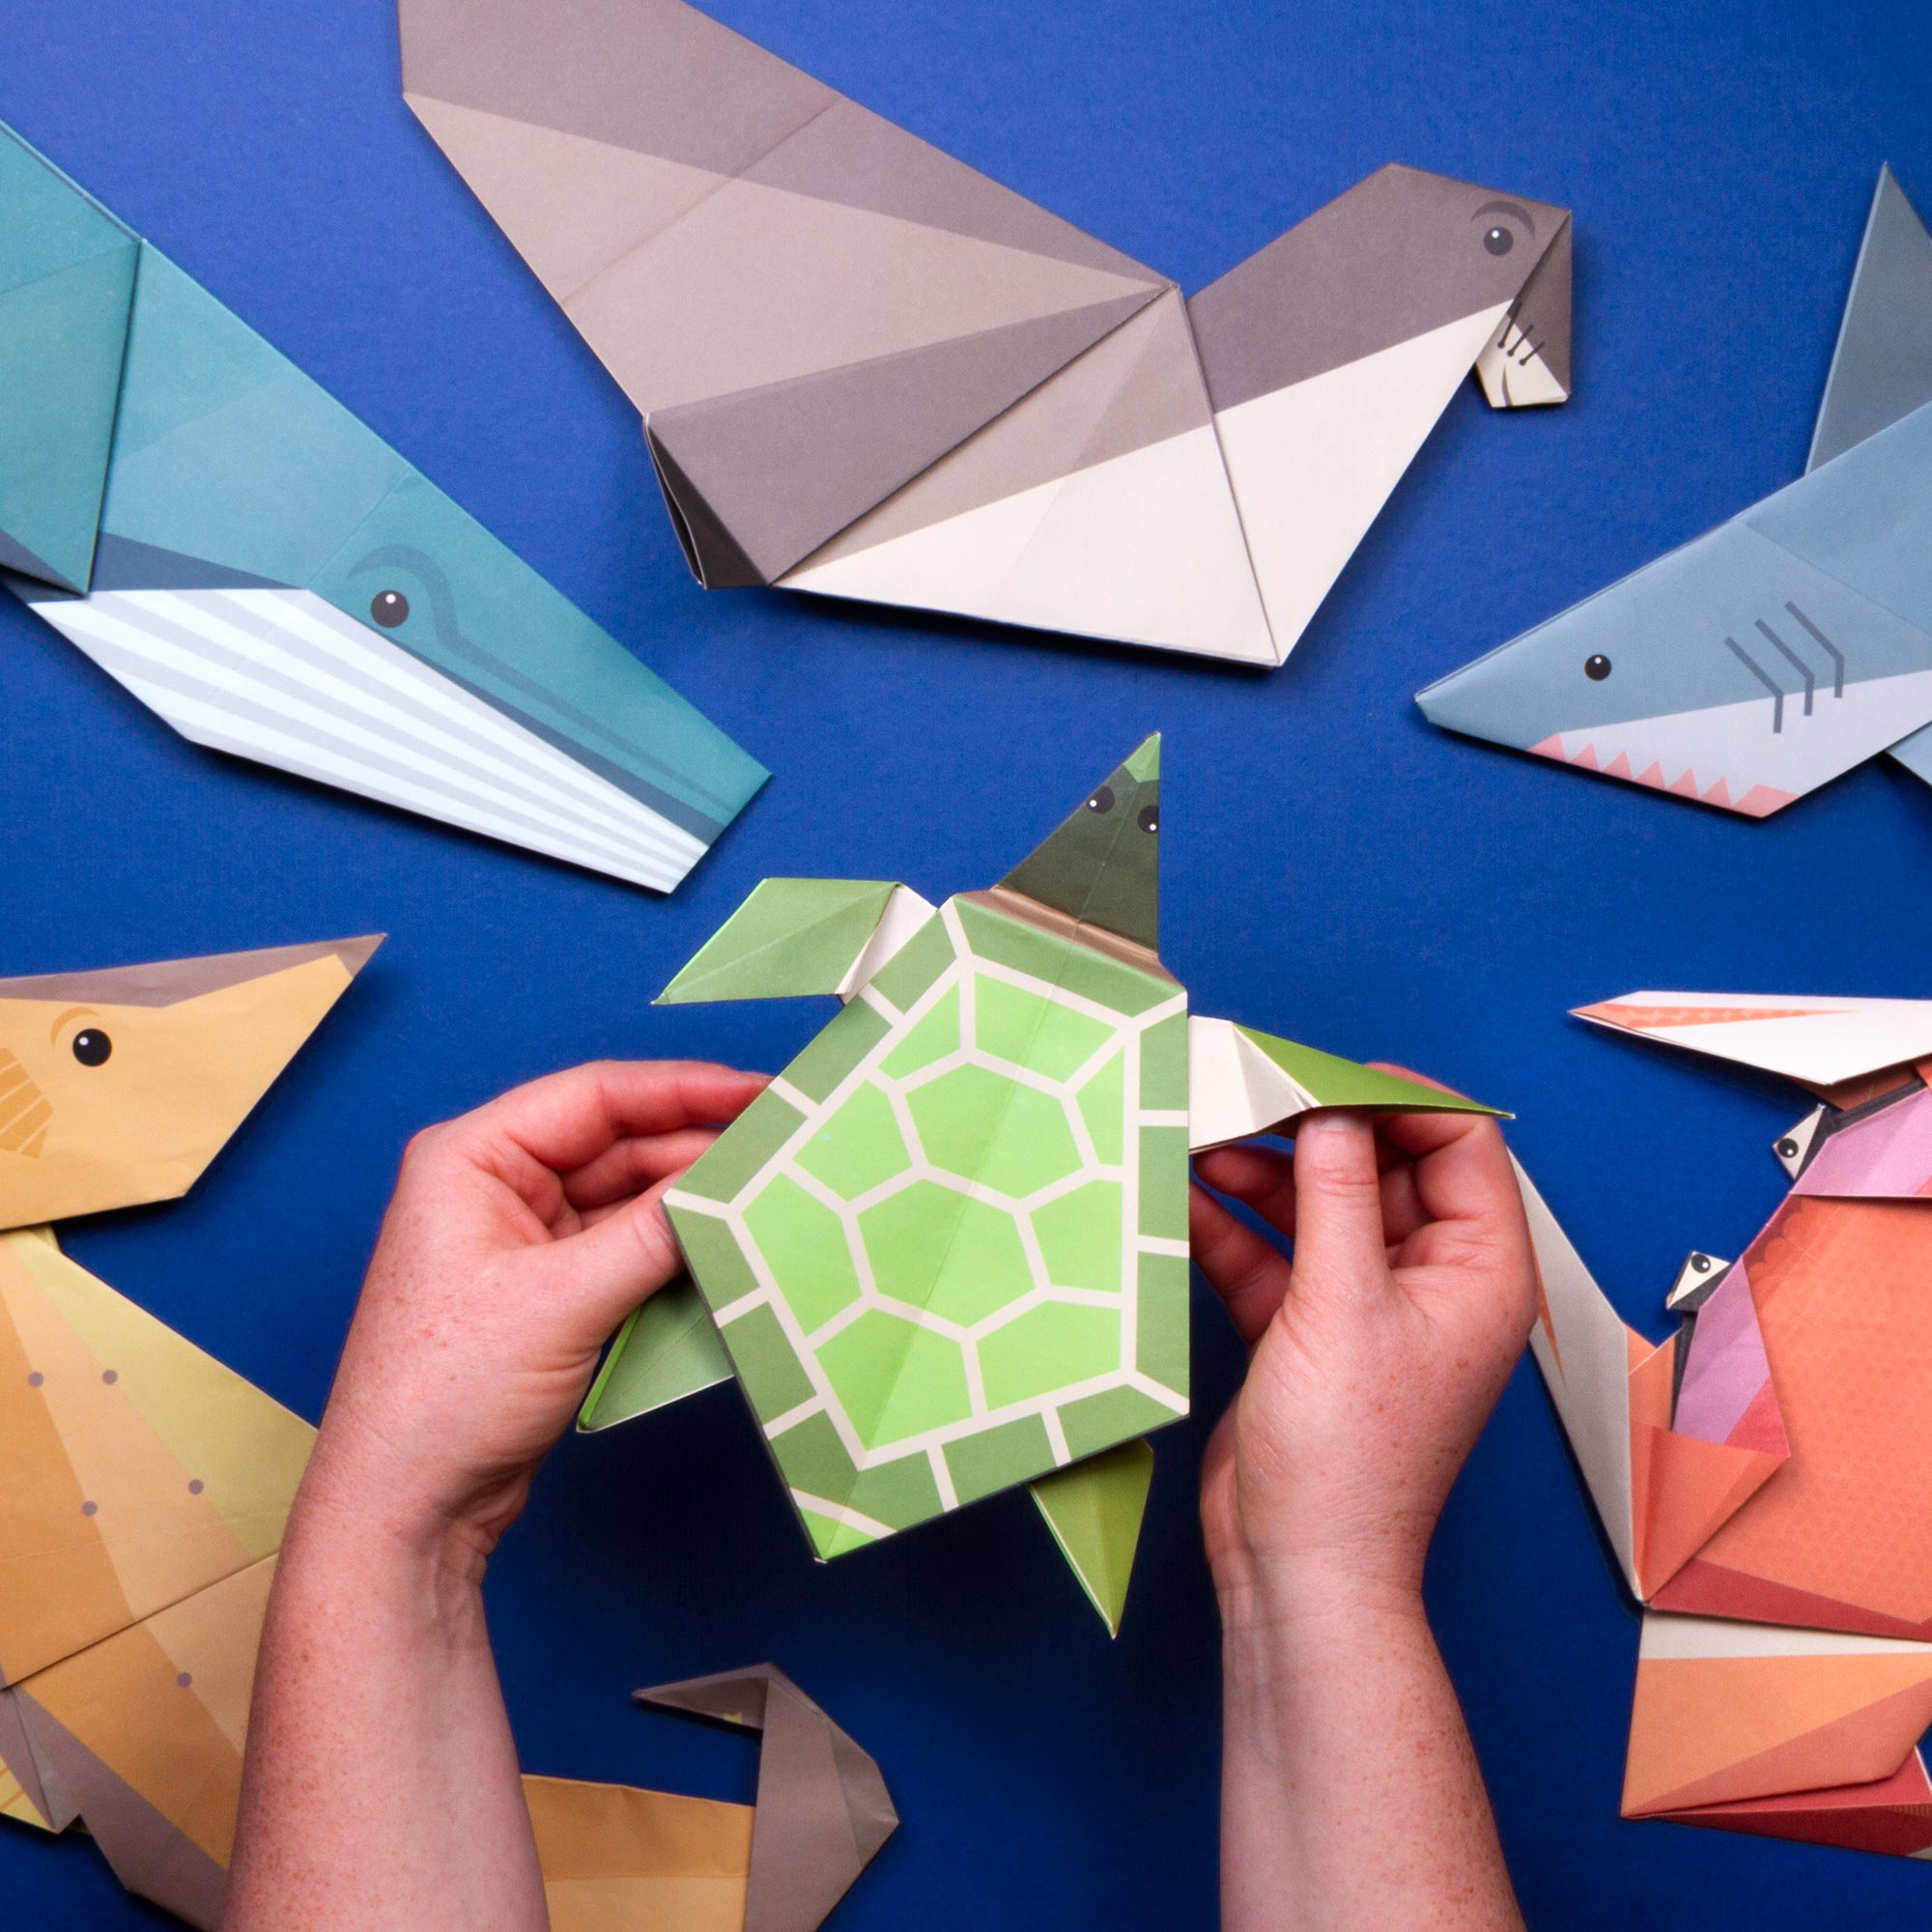 Giant Ocean Origami includes